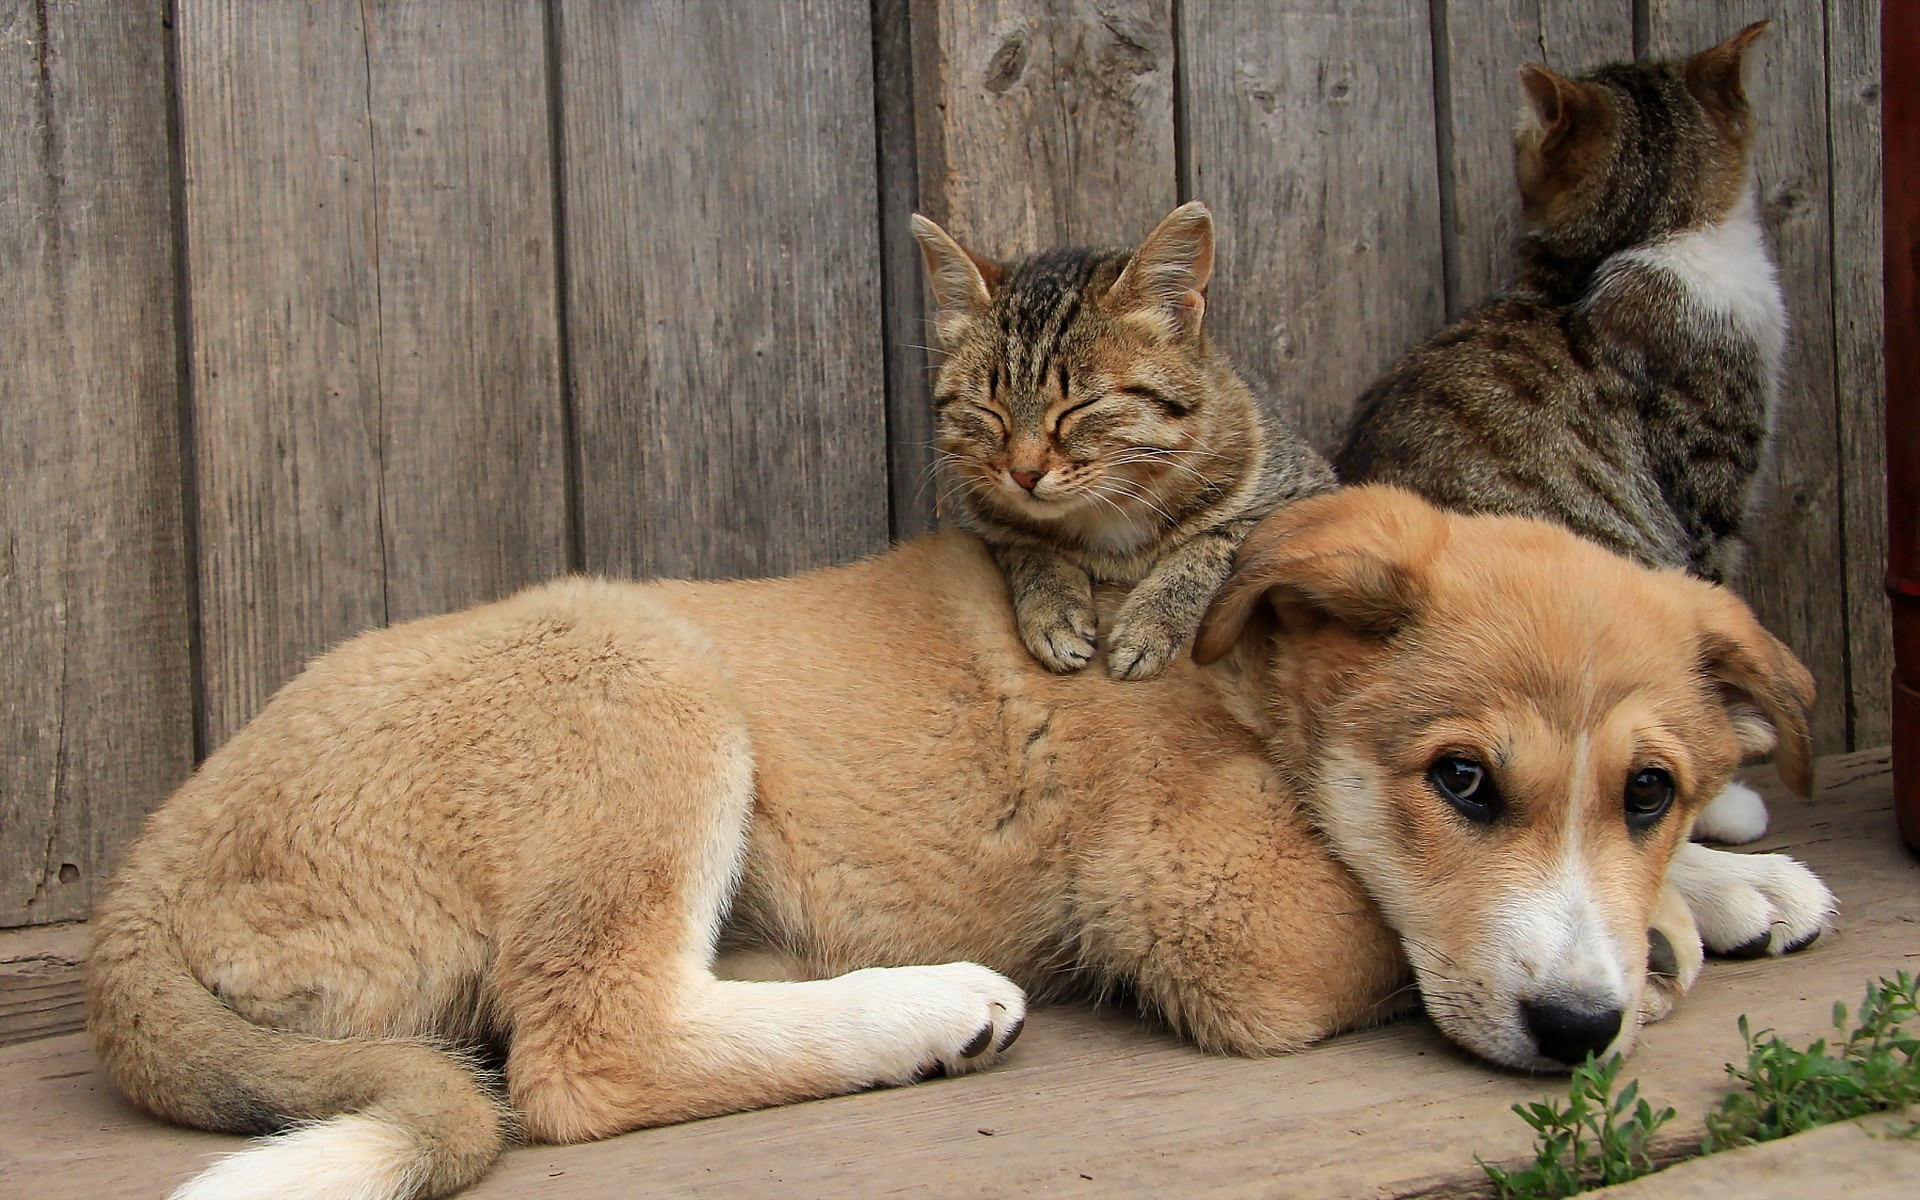 Free Cute Animal Wallpapers For Desktop Dog And Cat Wallpaper 53 Images